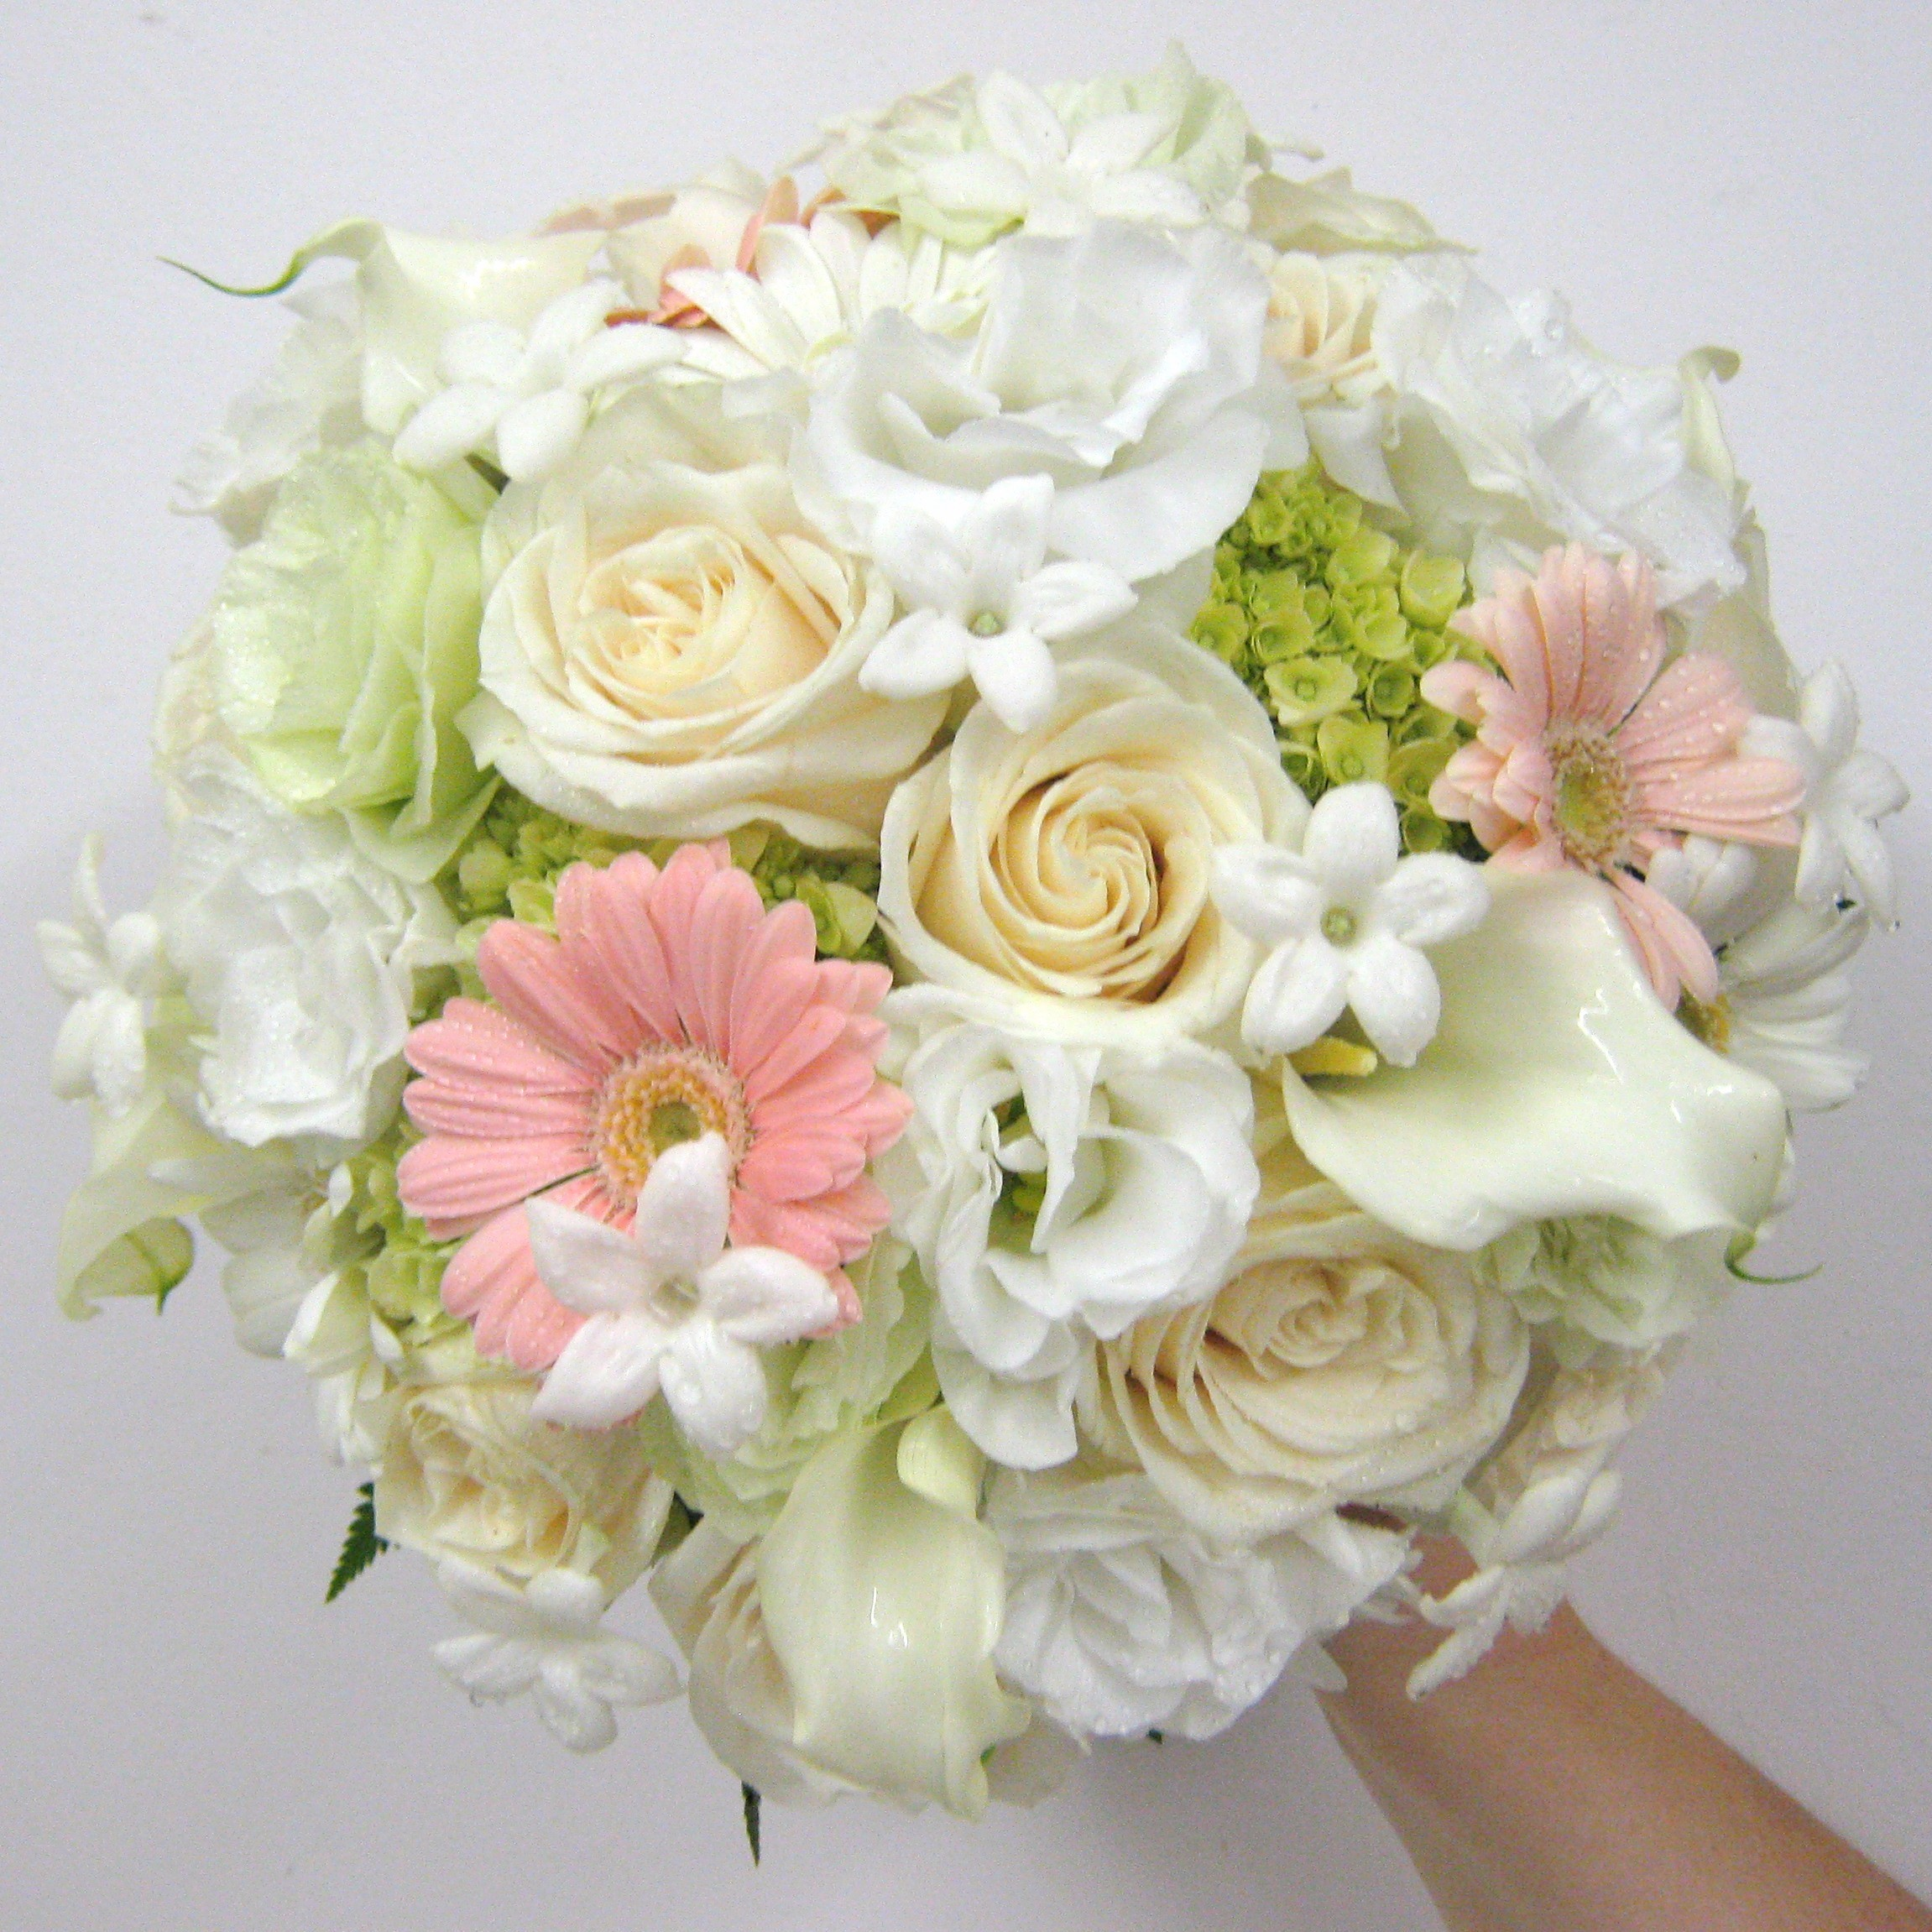 Wedding Bridal Flowers: Buffalo Wedding & Event Flowers By